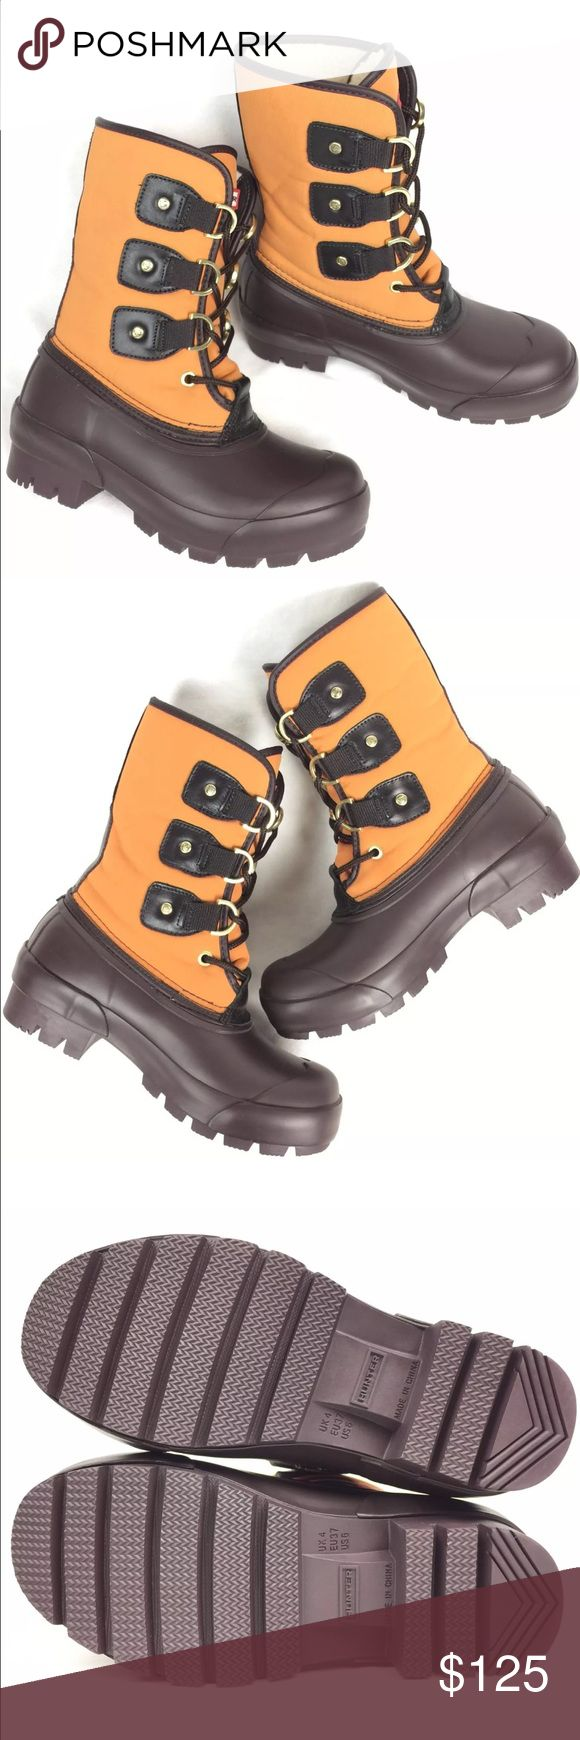 Hunter 'Cort' Orange / Brown Rubber Duck Boots Just try on | Boots have minor marks on the rubber material due to storage. | Actual Pictures | Original box not included.  Faux Fur Lining Hunter Boots Shoes Winter & Rain Boots